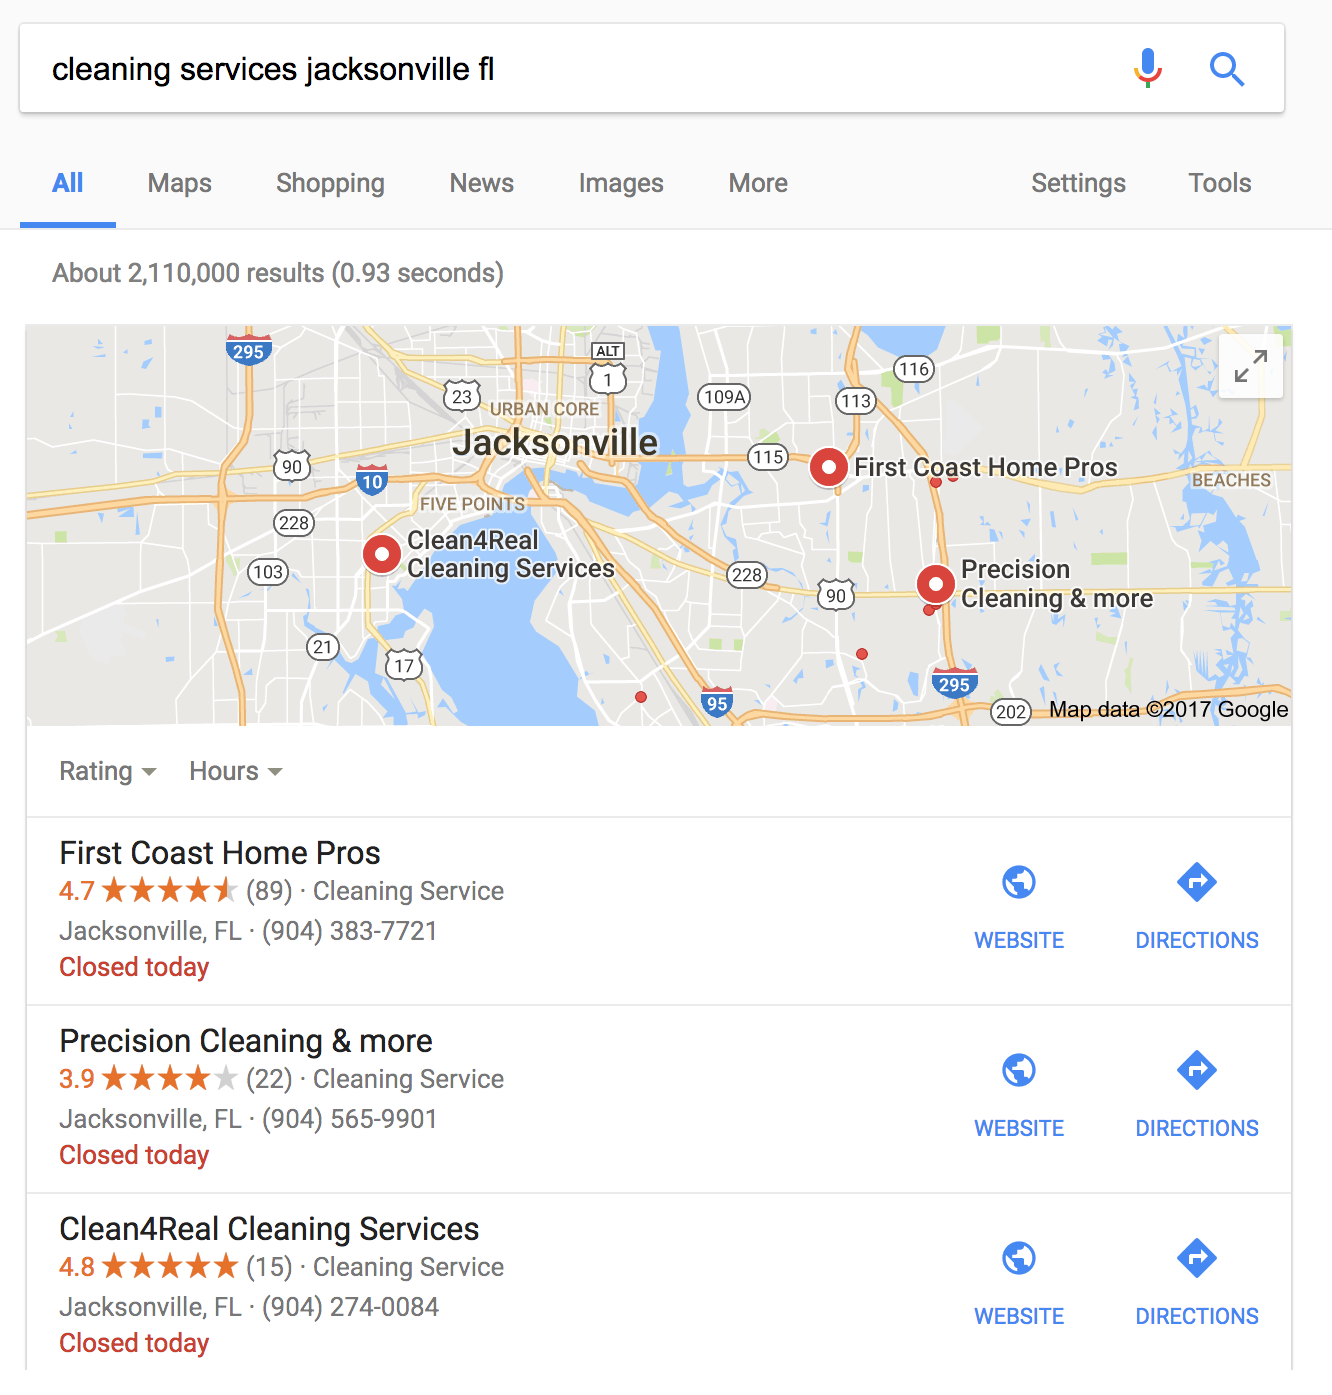 Cleaning services Jacksonville merged